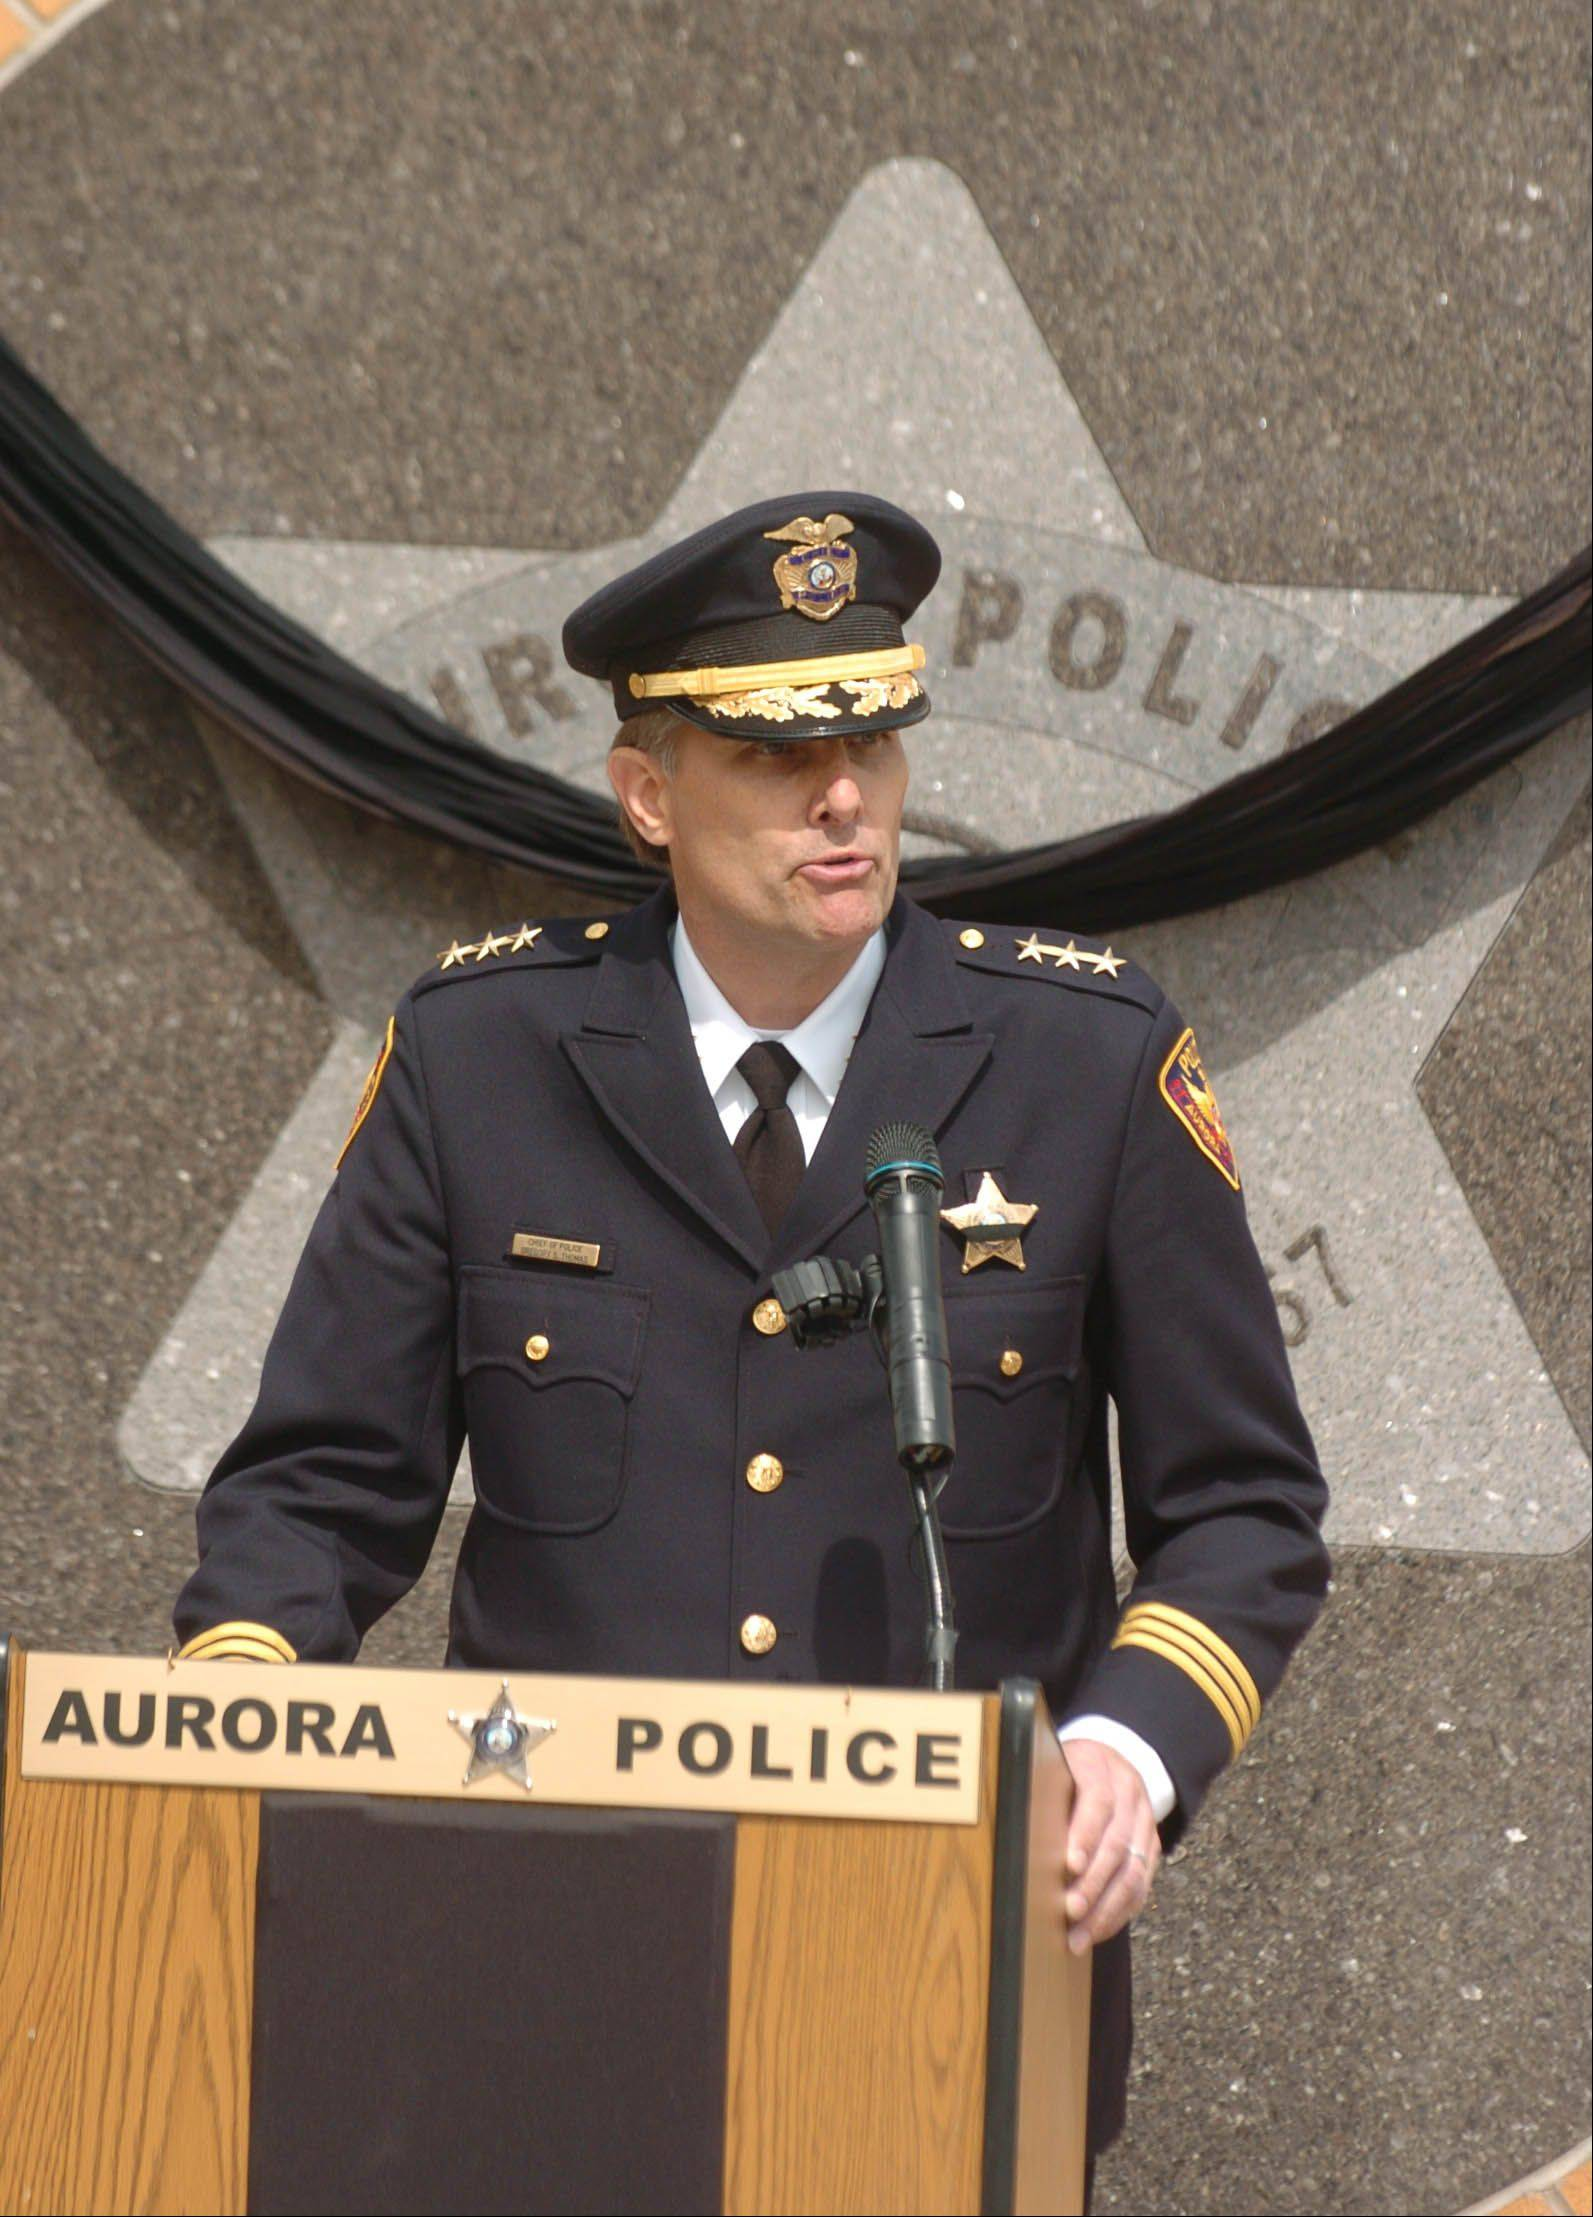 Police Chief Greg Thomas says collaborations with state and federal authorities, police efforts to decrease gang involvement, programs run by community groups and an element of luck allowed Aurora to be murder-free in 2012.